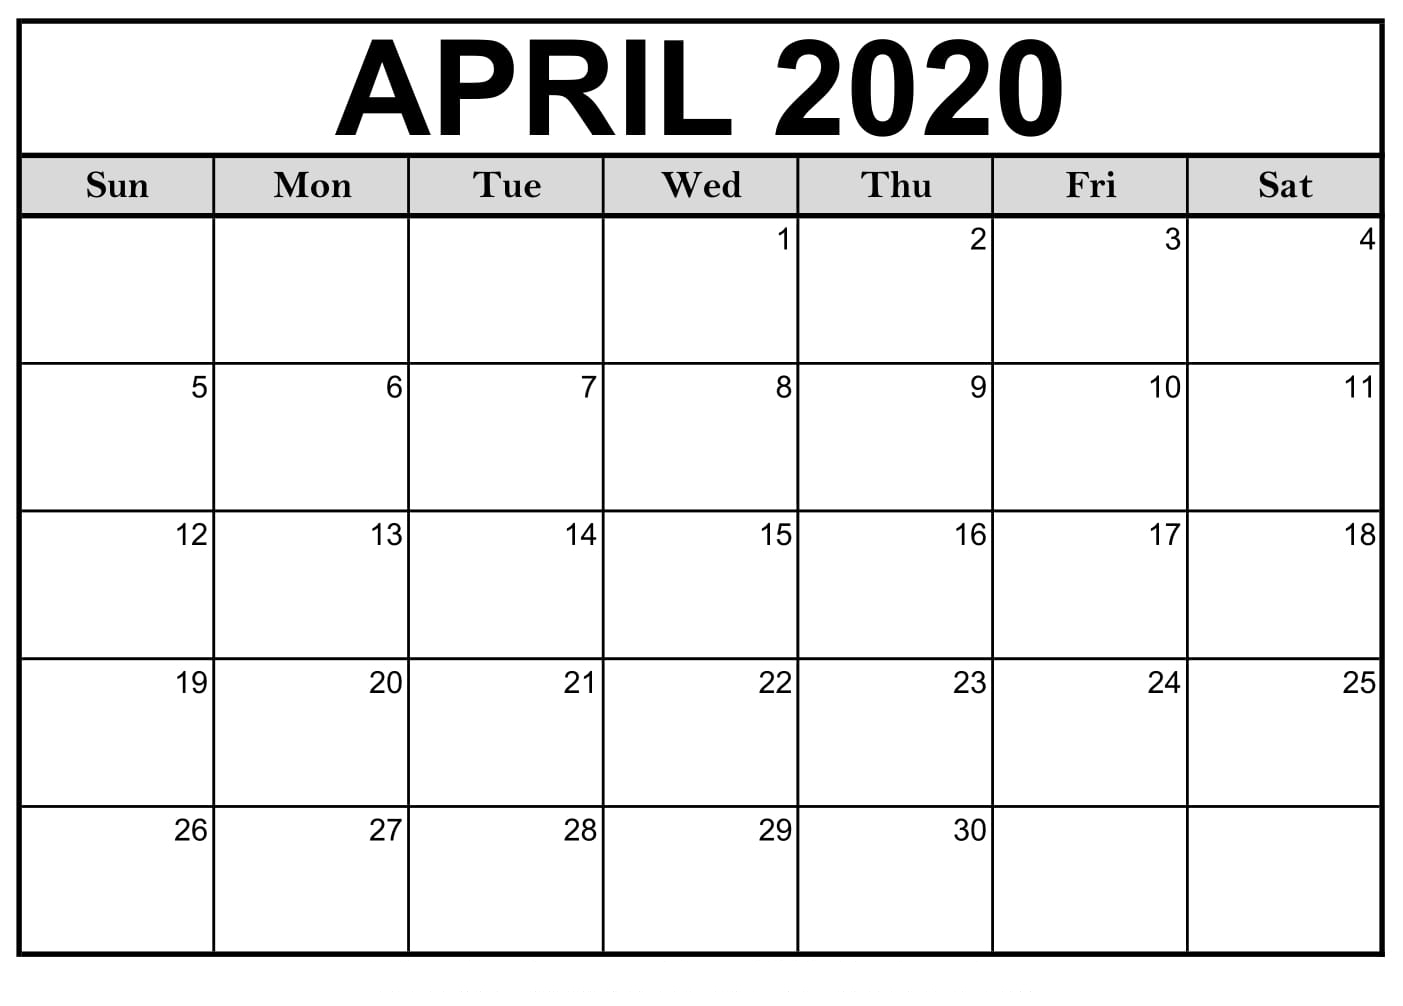 April 2020 Calendar Printable Monthly Calendar - Idea Hunt  Free Printable Monthly Calendar That Can Be Edited